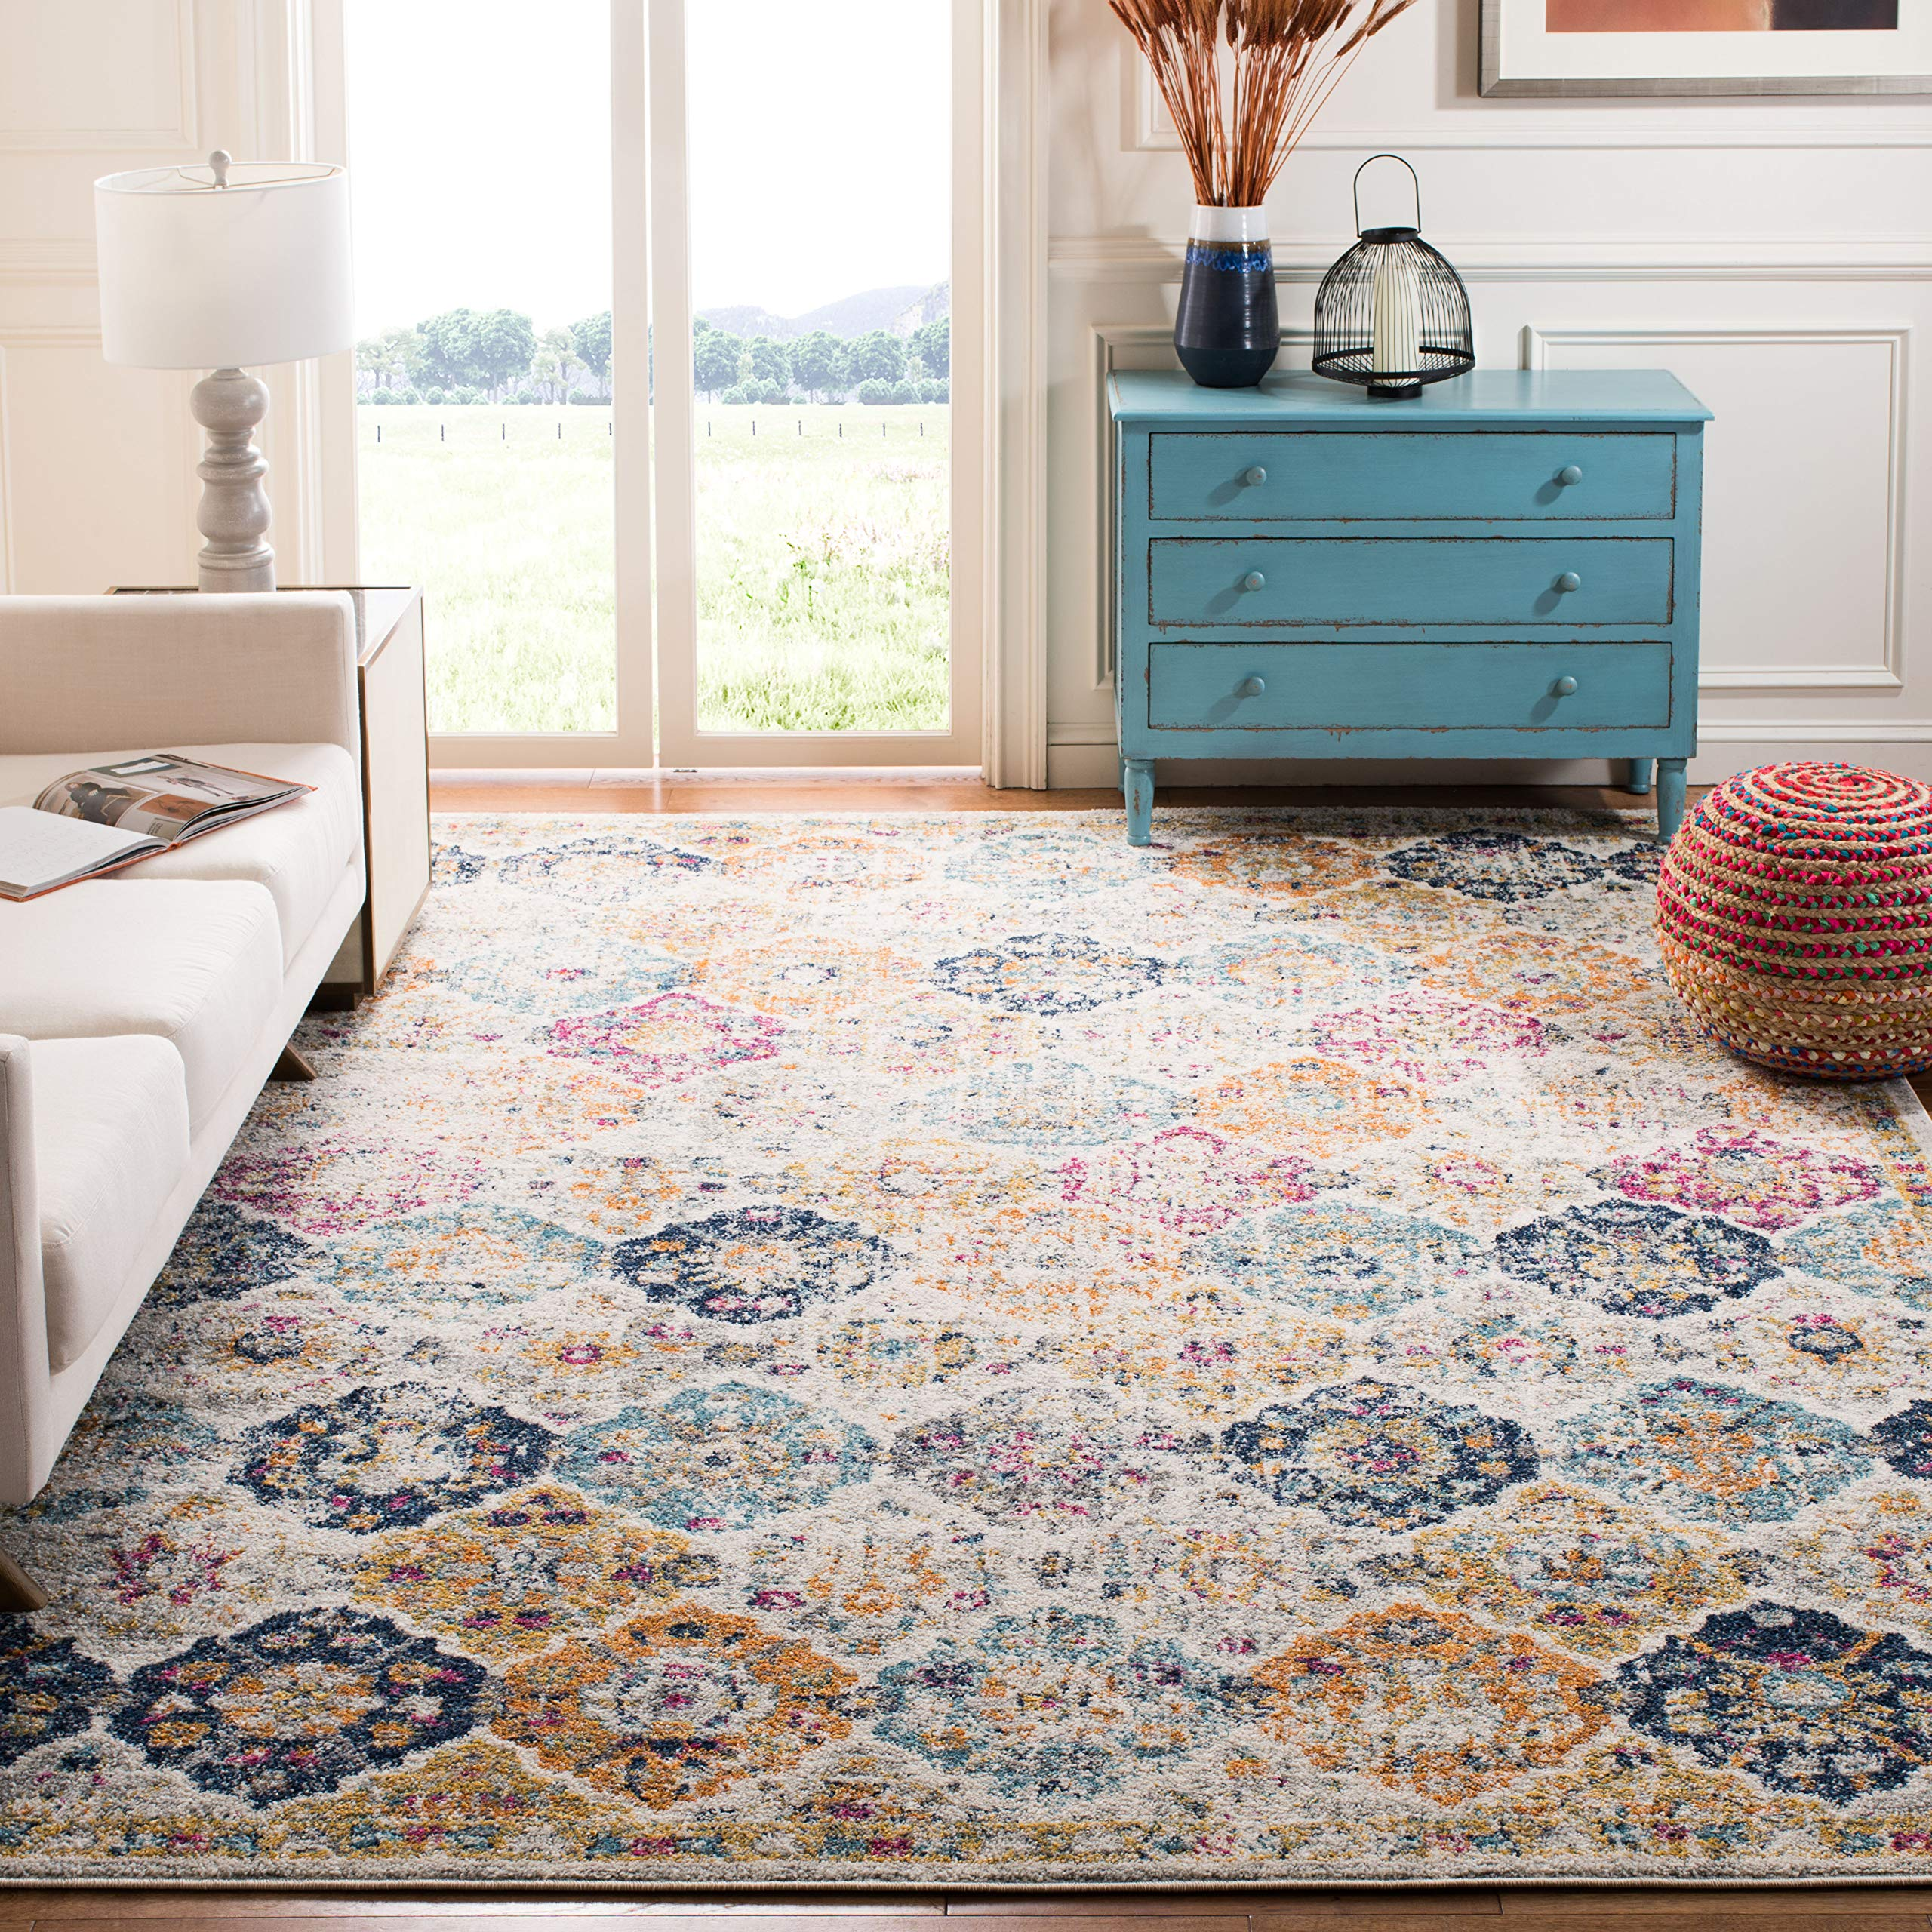 Safavieh Madison Collection MAD611B Cream and Multicolored Bohemian Chic Distressed Area Rug (4' x 6') by Safavieh